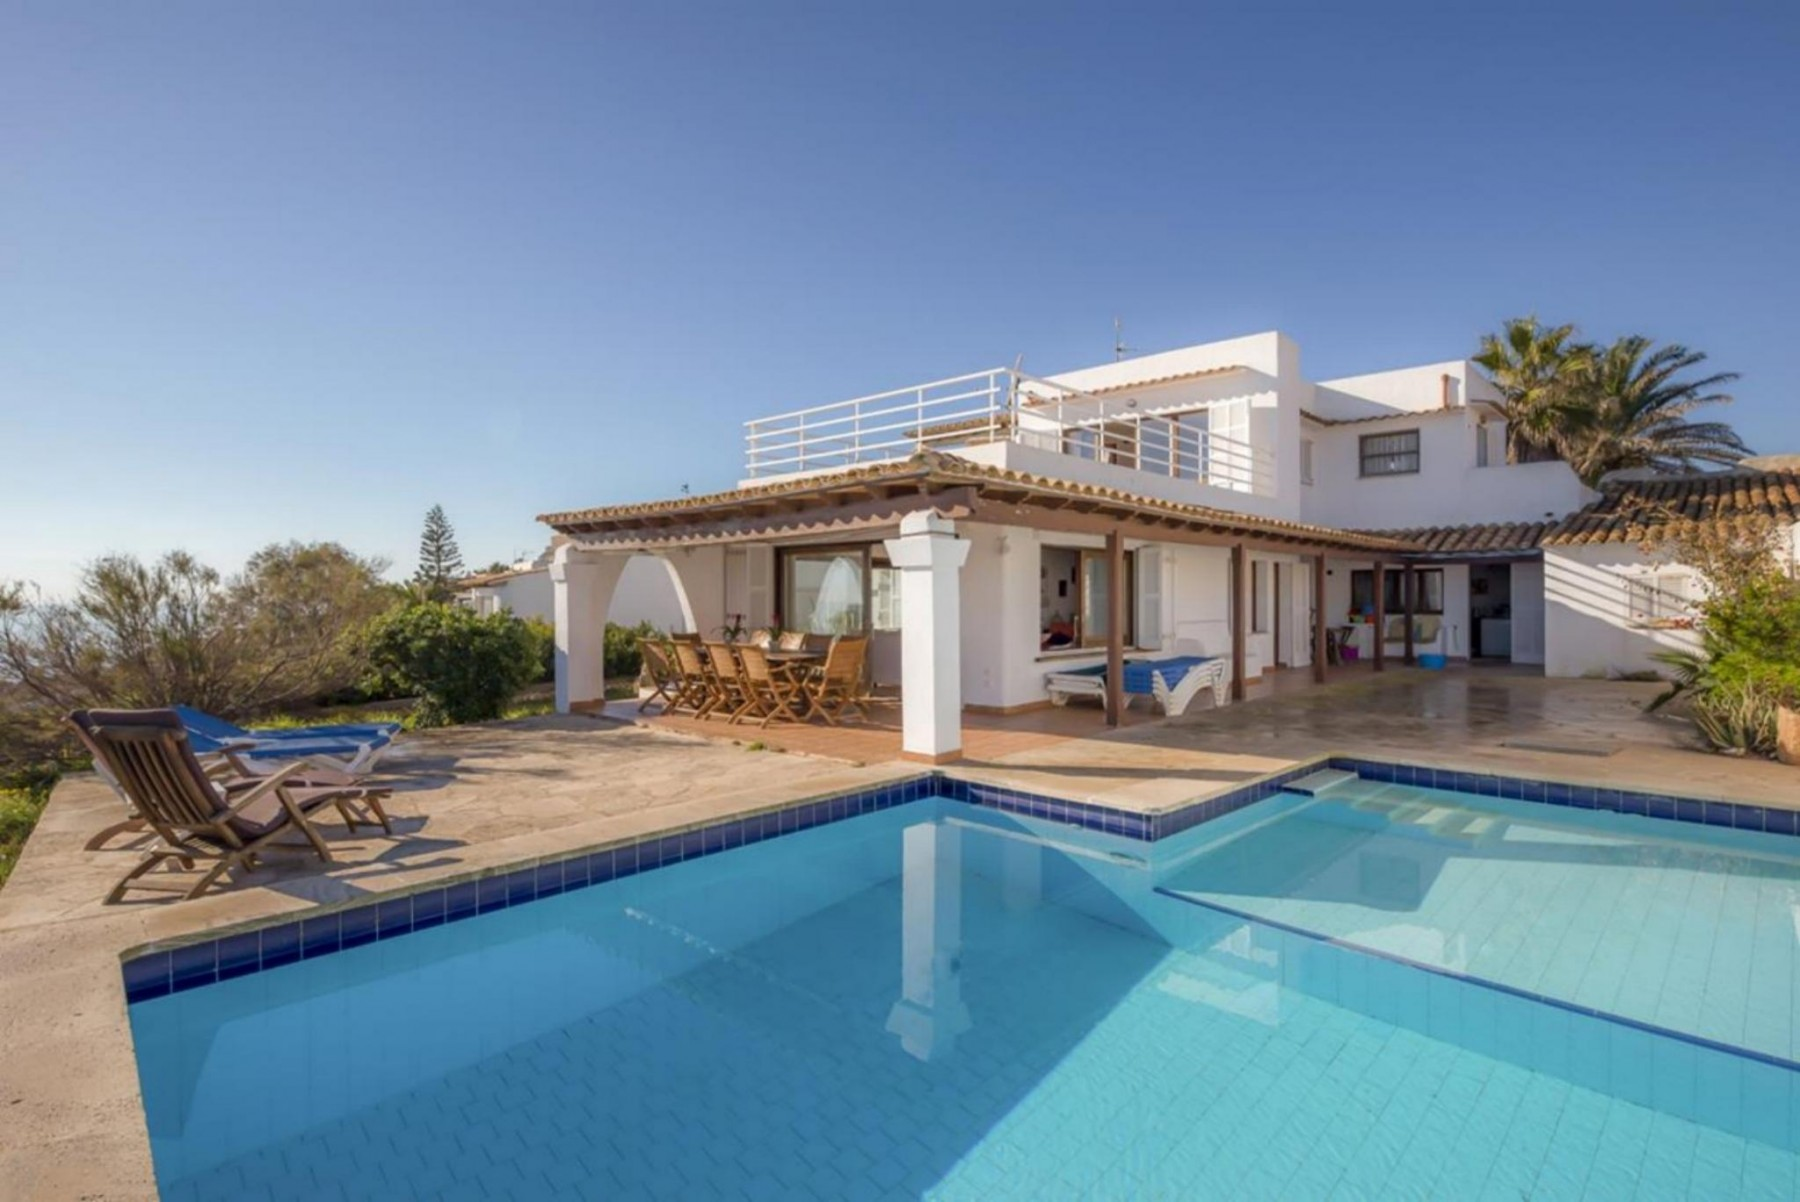 SOL NAIXENT - 0547 for 10 guests in Felanitx, Spanien